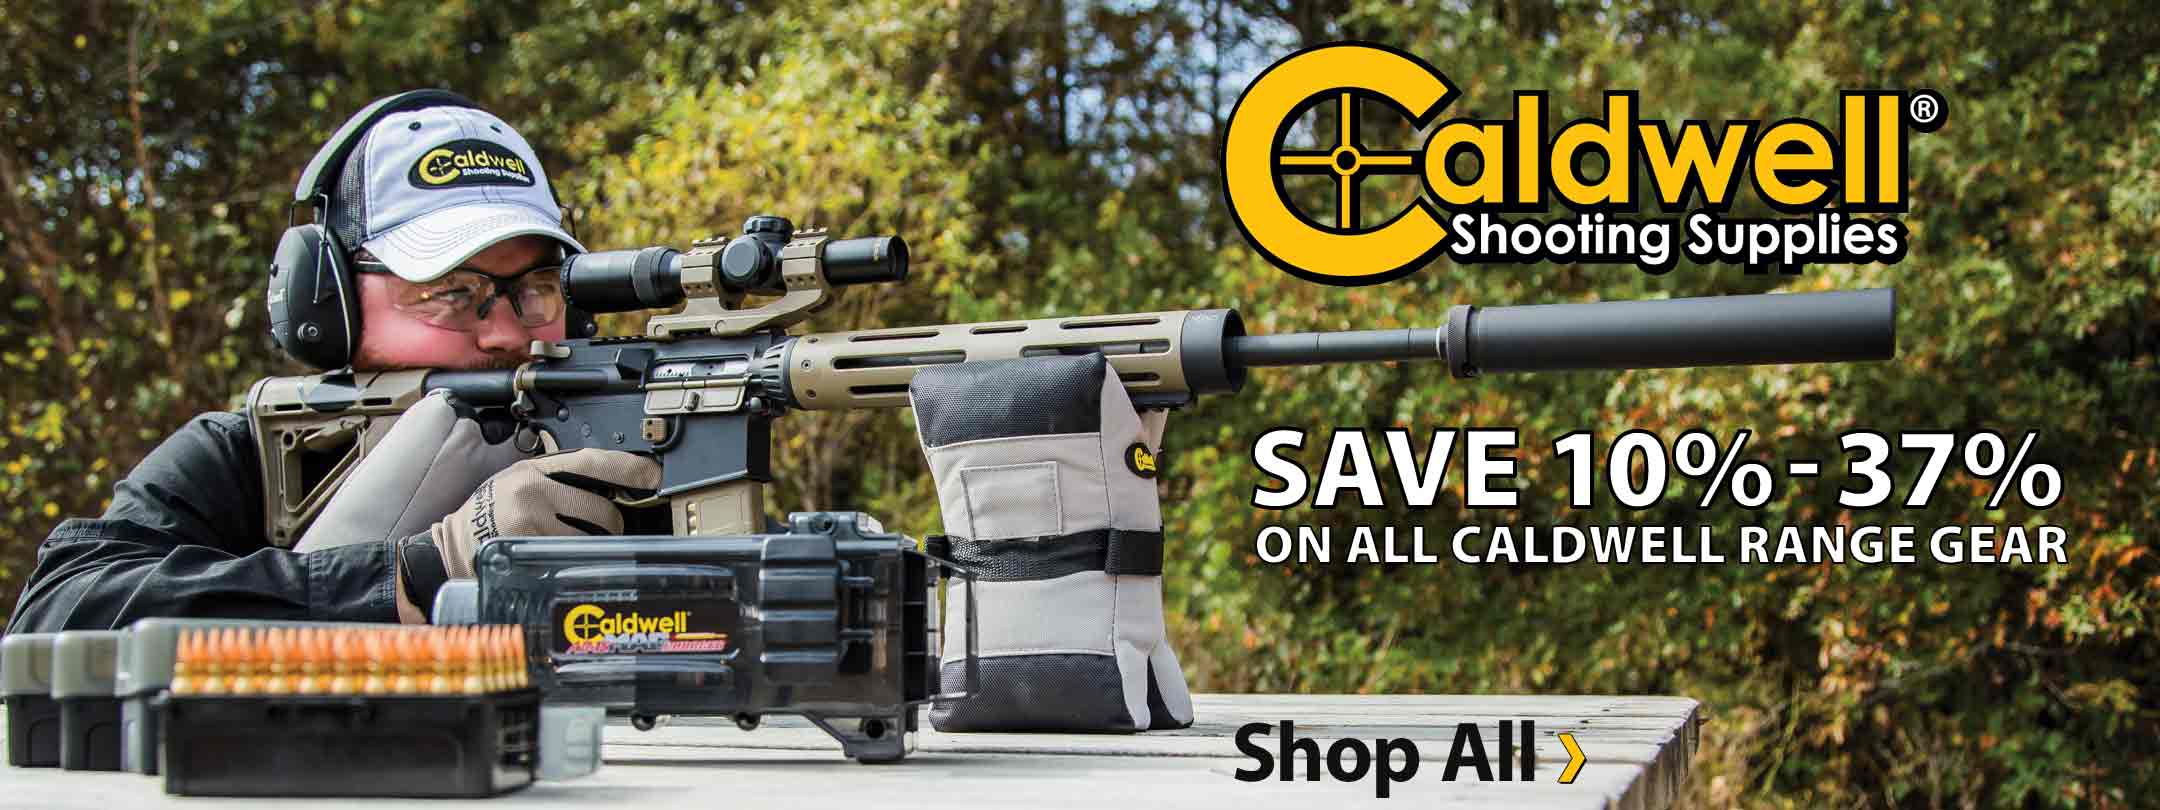 Save 10% - 37% on All Caldwell Range Gear